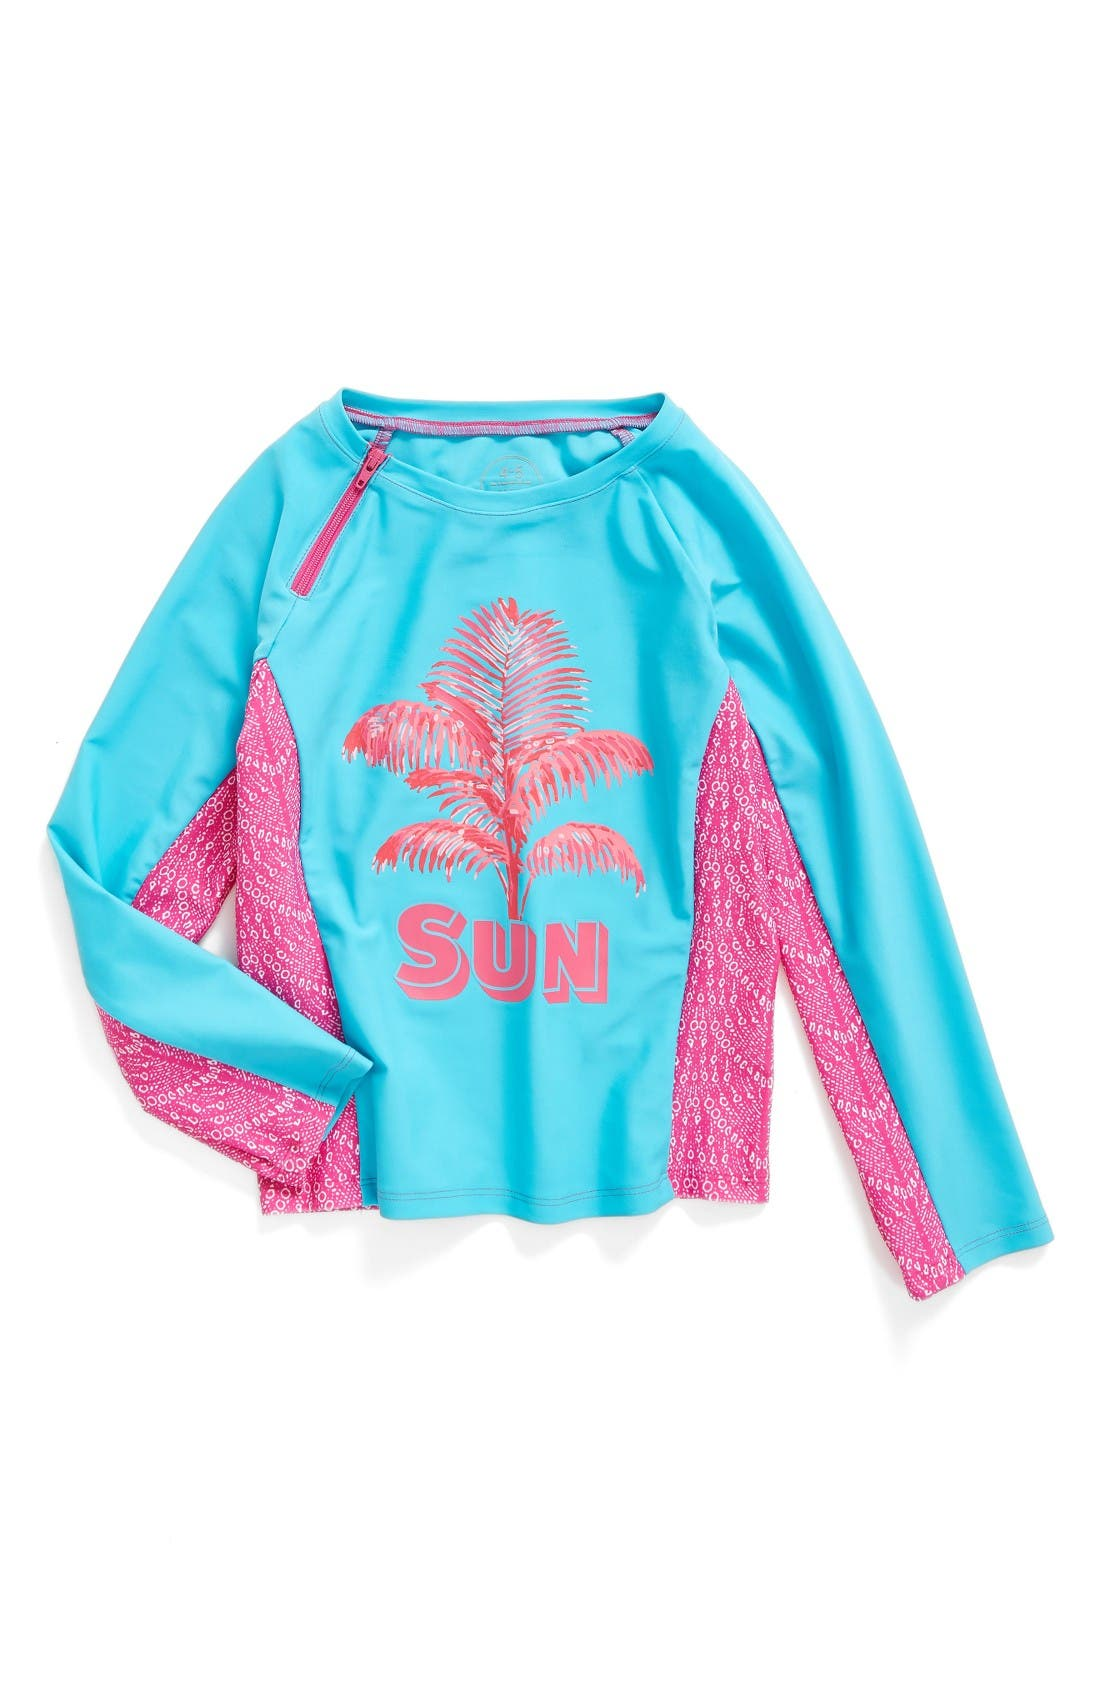 Mott 50 Graphic Long Sleeve Rashguard (Toddler Girls, Little Girls & Big Girls)